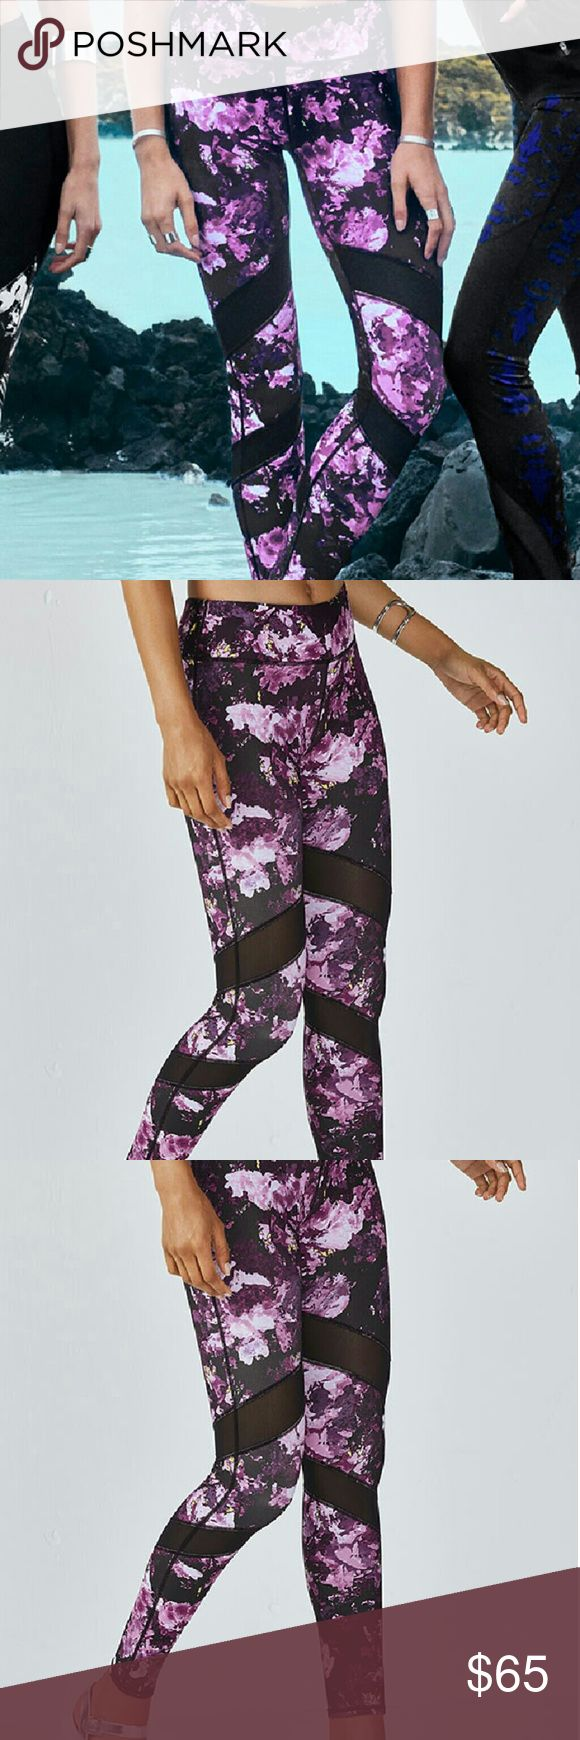 🌸NWT! Fabletics Gaviota leggings, orchid impasto GAVIOTA LEGGING  Color: Orchid Impasto Print  Size: M  Inseam: Tall 30  Double up on breathable mesh details to keep you cool from all angles. All-way stretch fabric, moisture-control technology, and a UPF 50+ treatment provide allow you to push your body to the brink (while still staying comfortable).  Styling: Moisture-Wicking, Compression Fabric, All-Way Stretch, Chafe-Free, UPF 50+, Internal Waistband Pocket for Key/Card, Semi-Sheer…